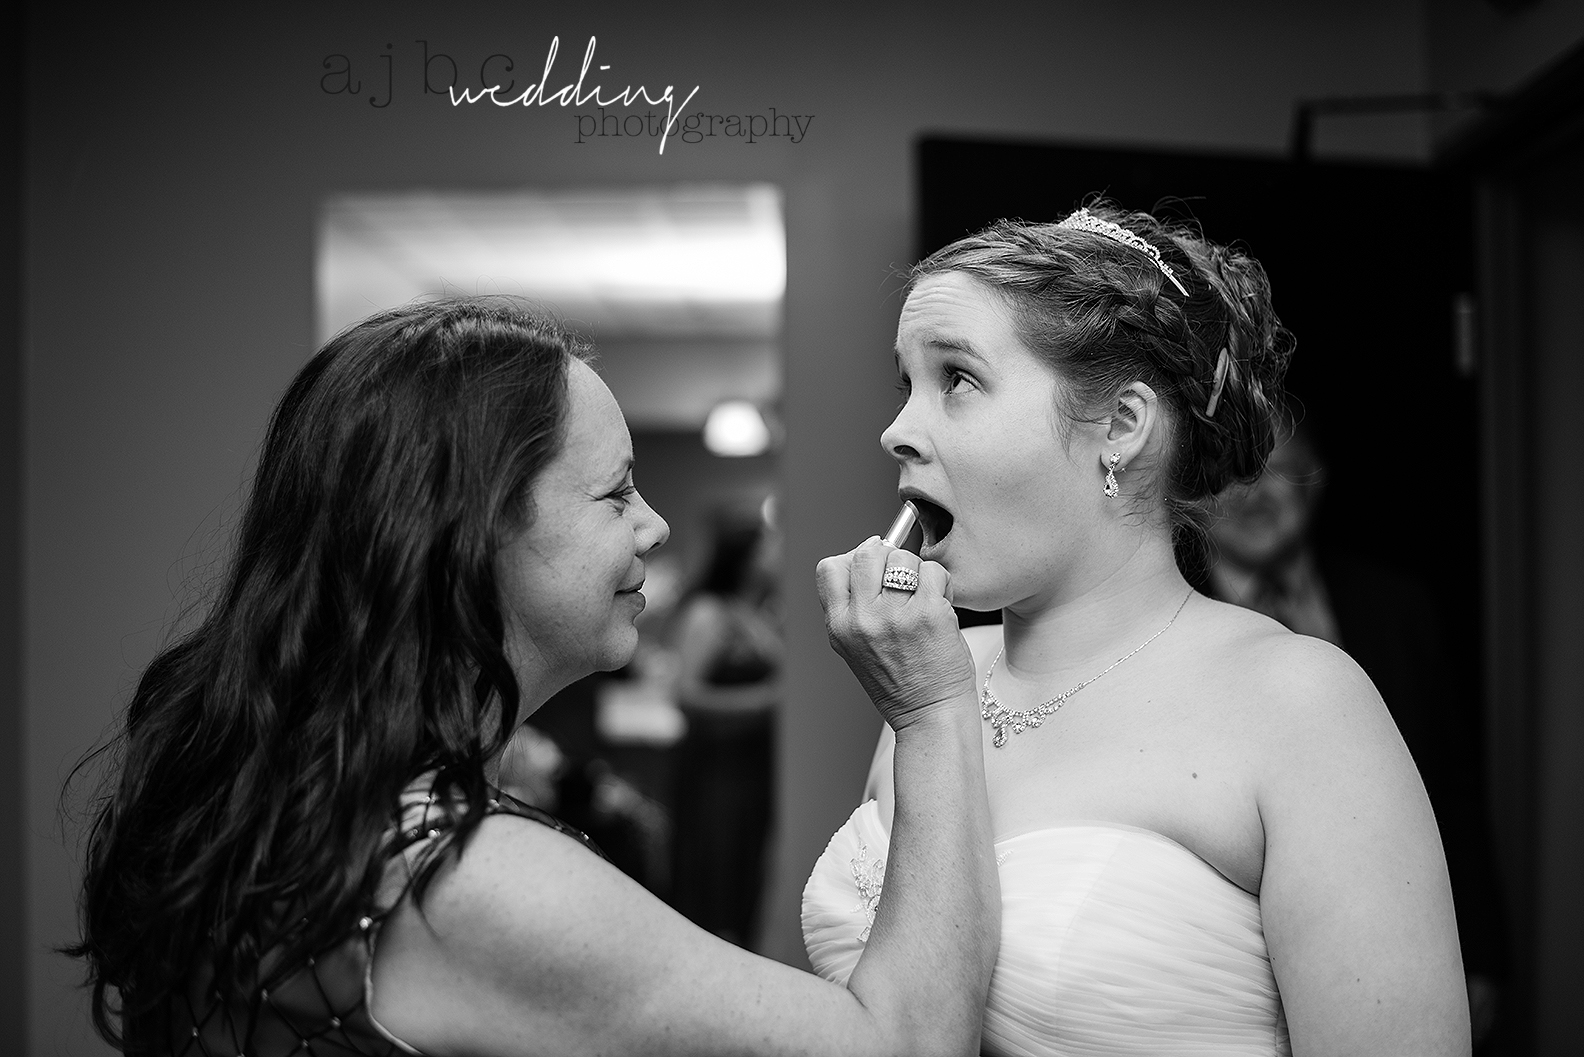 ajbcphotography-port-huron-michigan-wedding-photographer-love-bride-groom-family-michigan-wedding-photographer-before-getting-ready.jpg